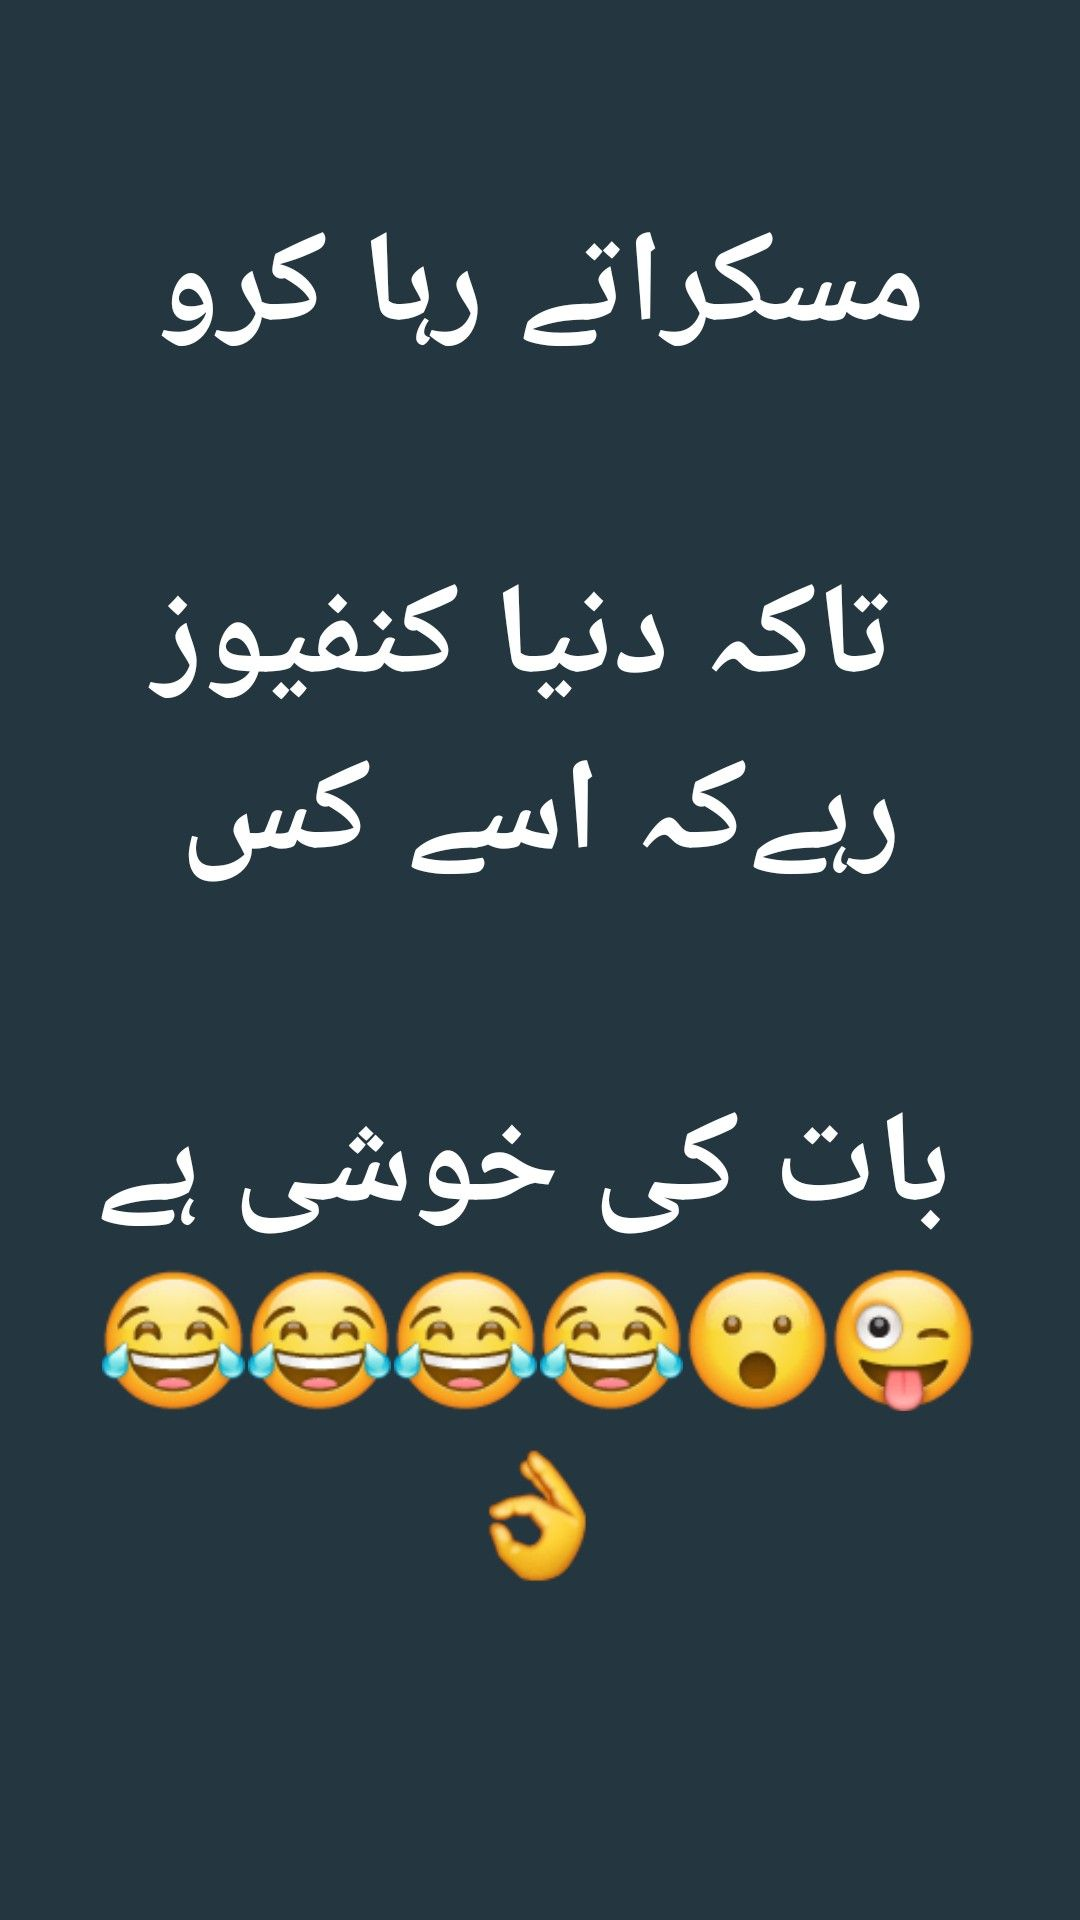 Firza Naz Funny Quotes For Whatsapp Urdu Funny Quotes Cute Funny Quotes